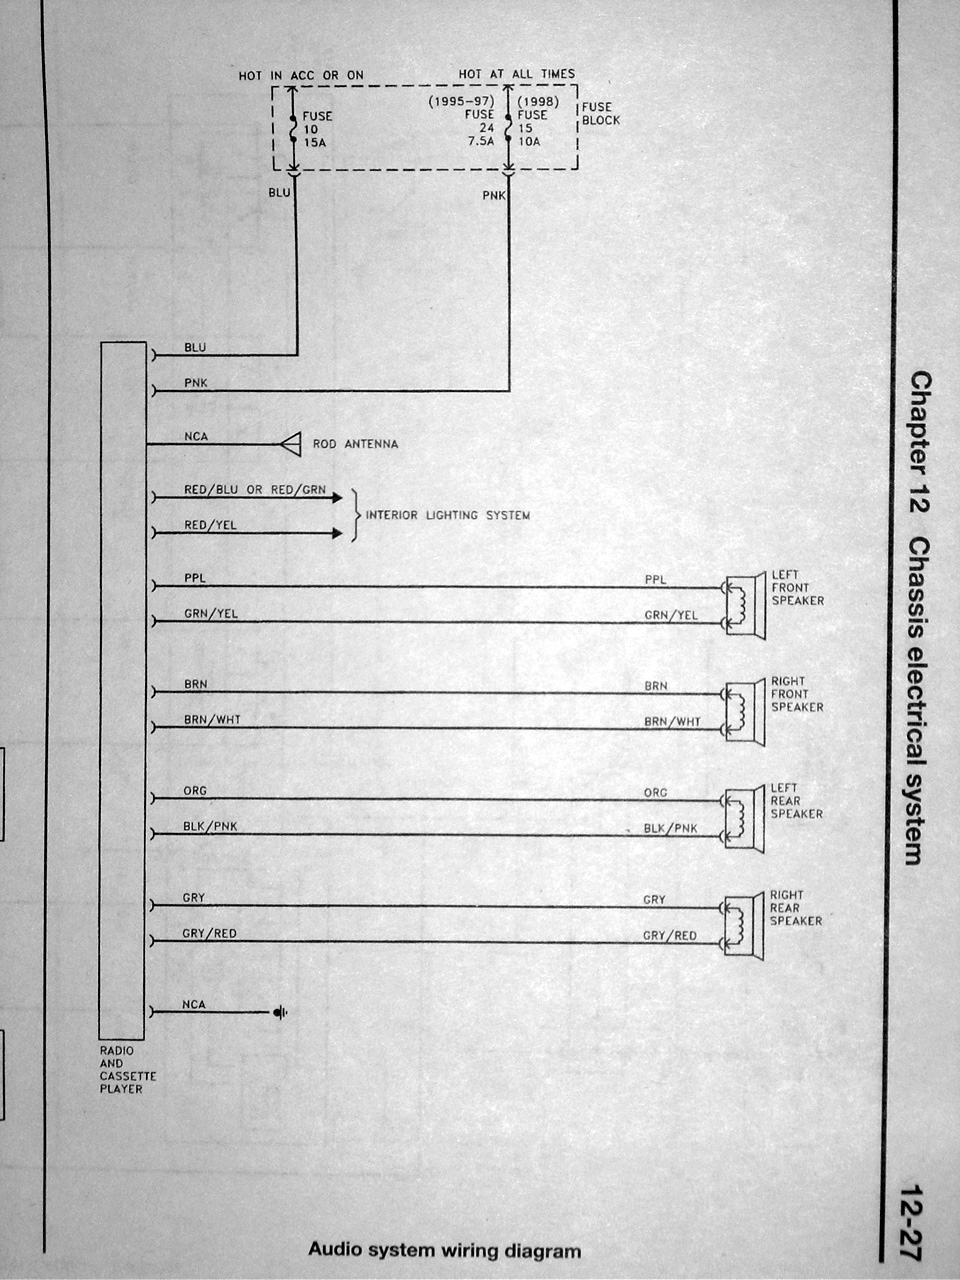 DSC01849 wiring diagram thread *useful info* nissan forum nissan sentra 2007 radio wiring diagram at mifinder.co